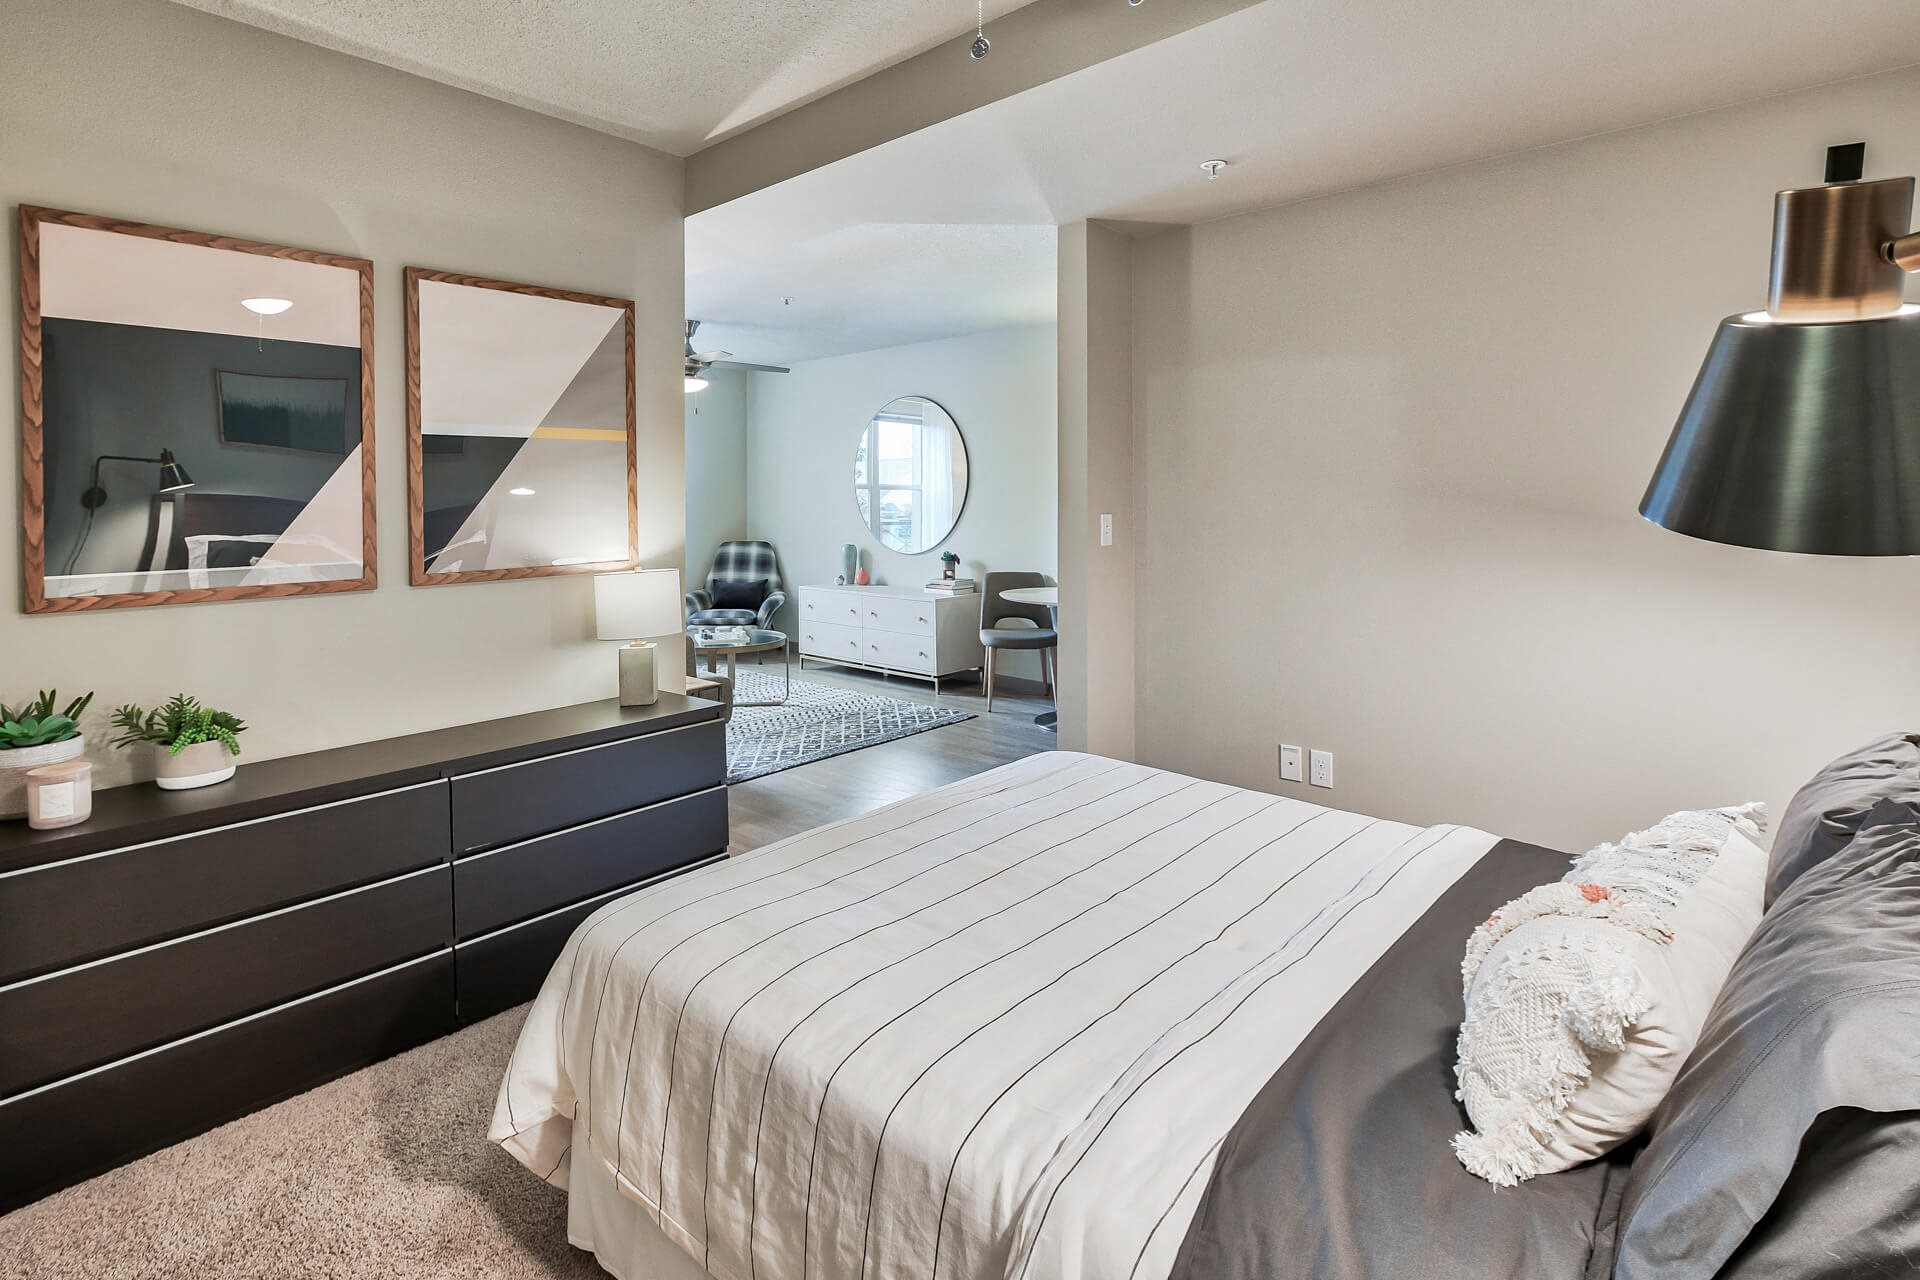 Spacious Bedroom With Comfortable Bed at Platform 14, Oregon, 97124